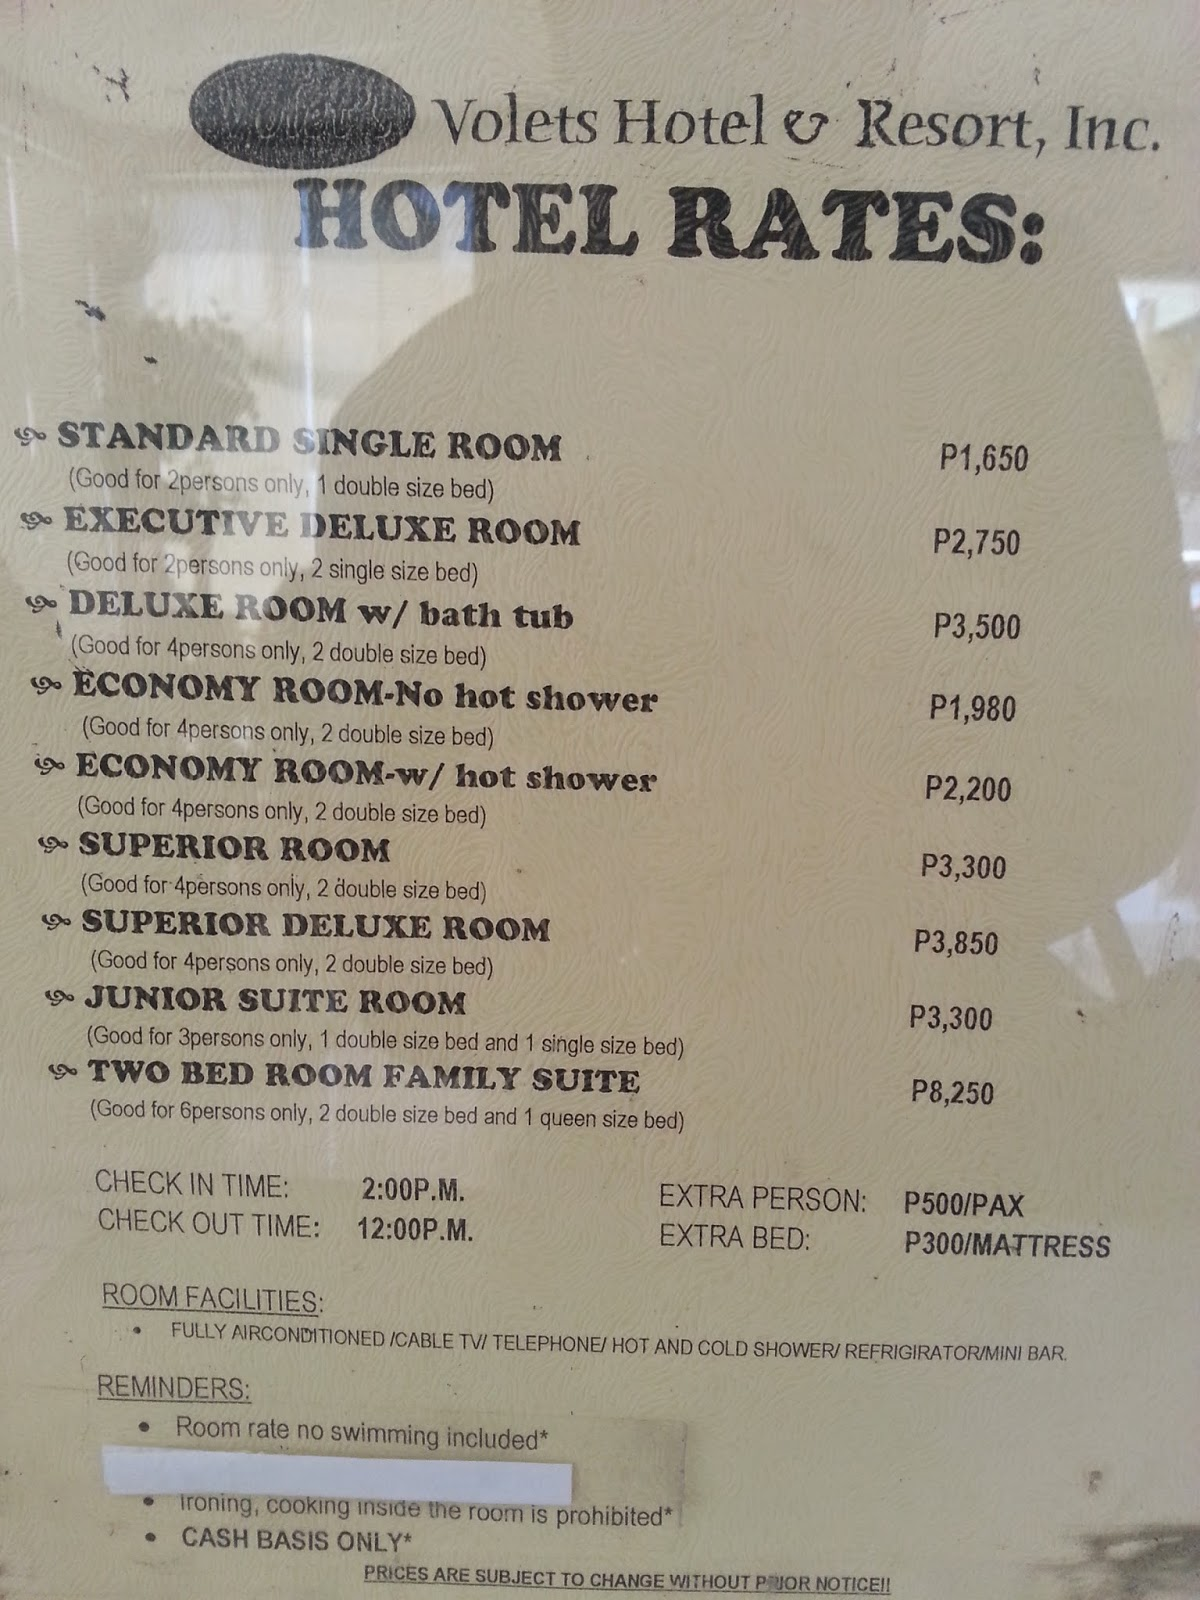 Waves Resort Hotel Room Rates